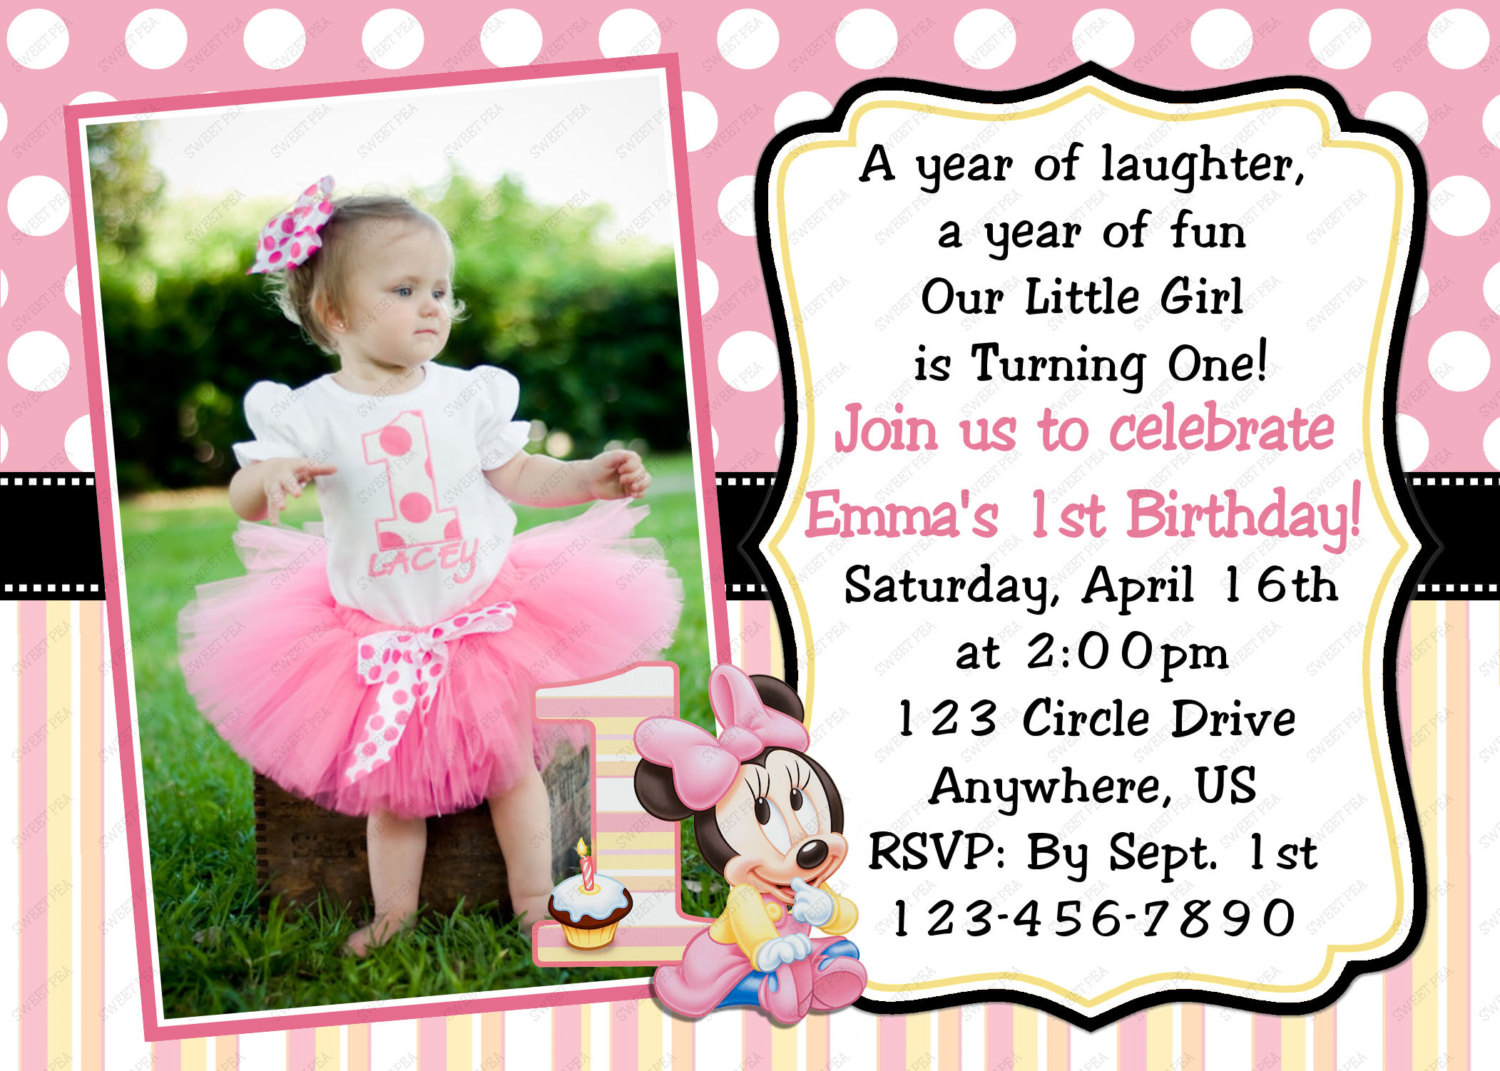 birthday invitation quotes for 2 year old ; 59358d5cf5c56b06dfc3a98c1b8a676f